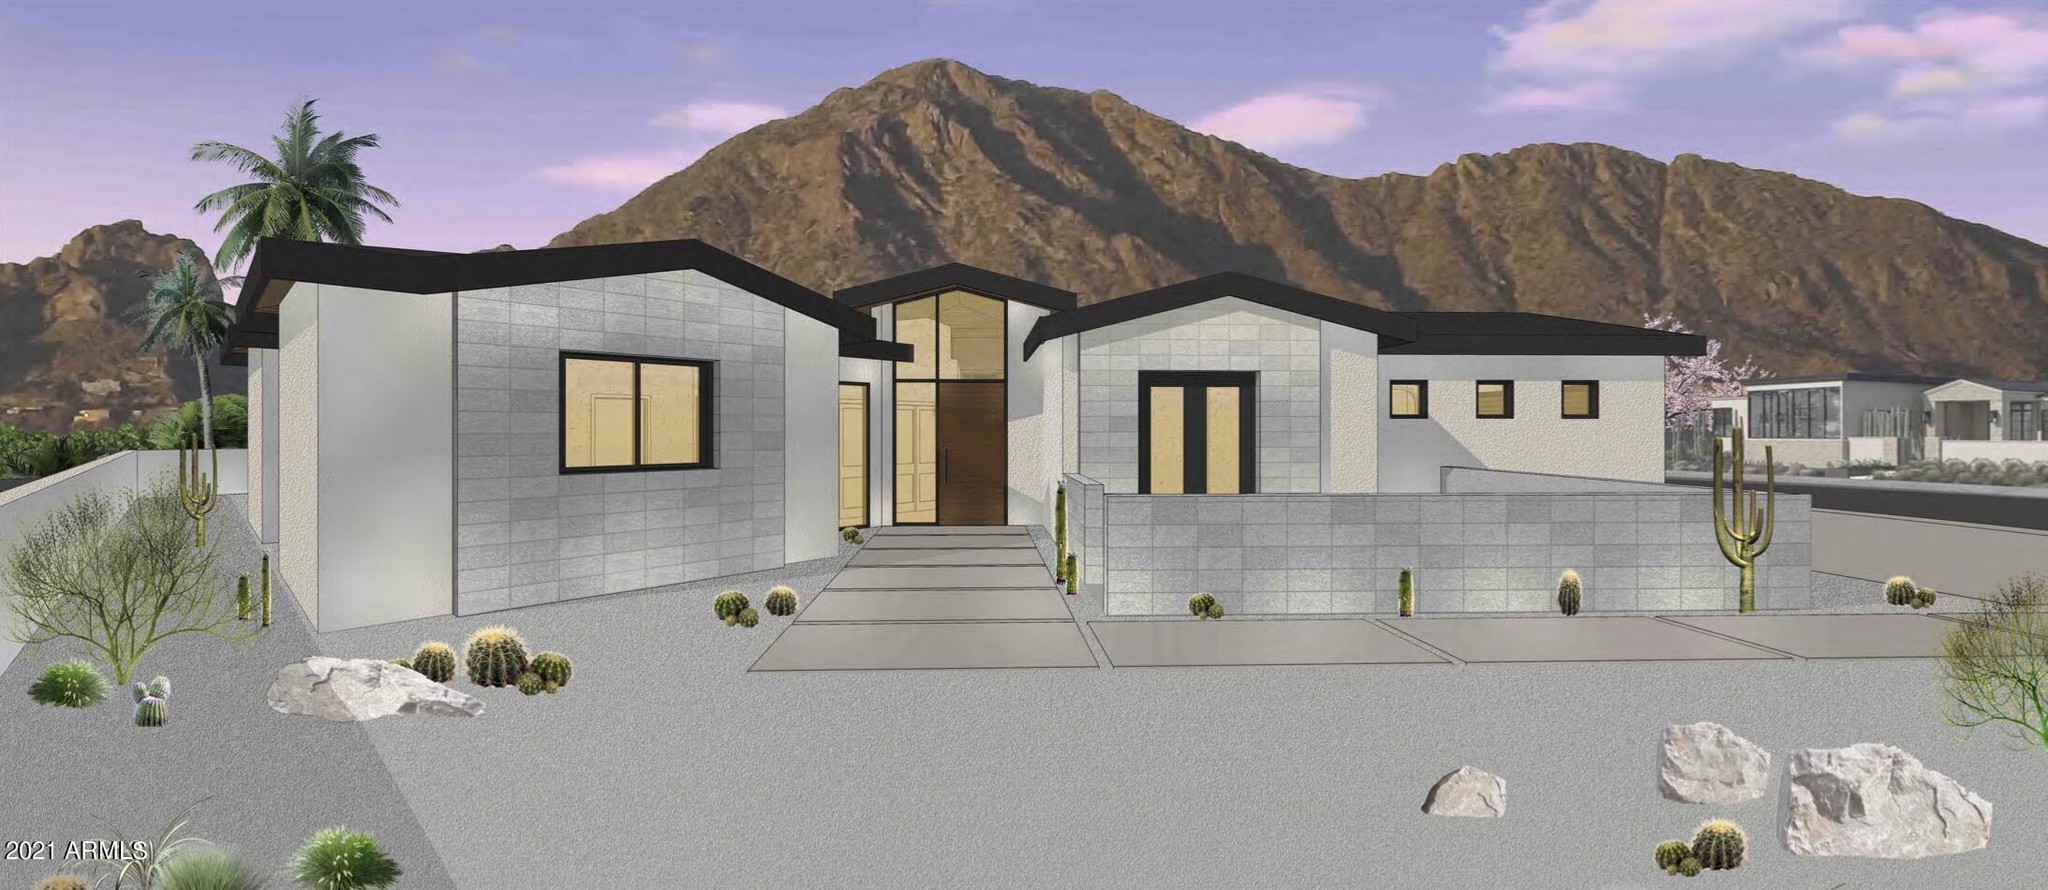 1-Story House In Paradise Valley